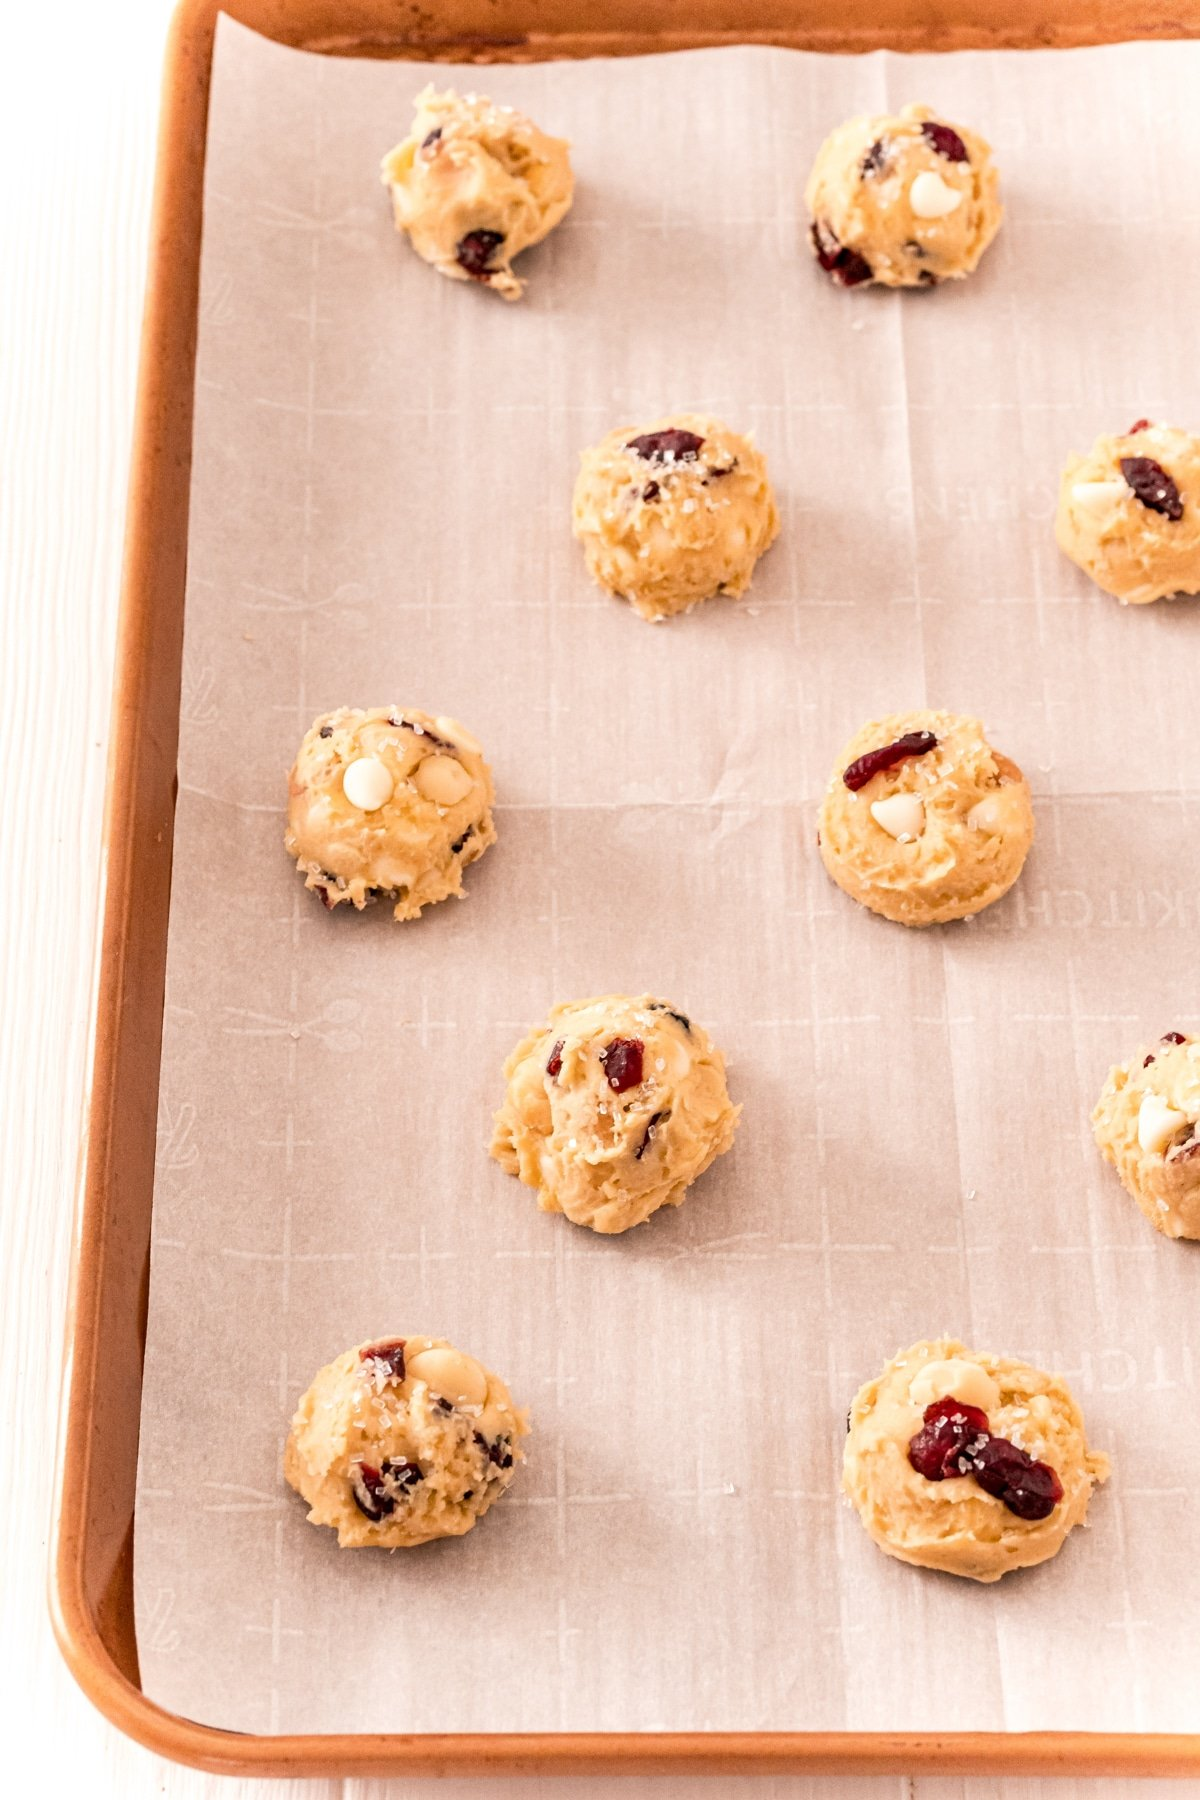 White chocolate cranberry cookies spread out on a baking sheet